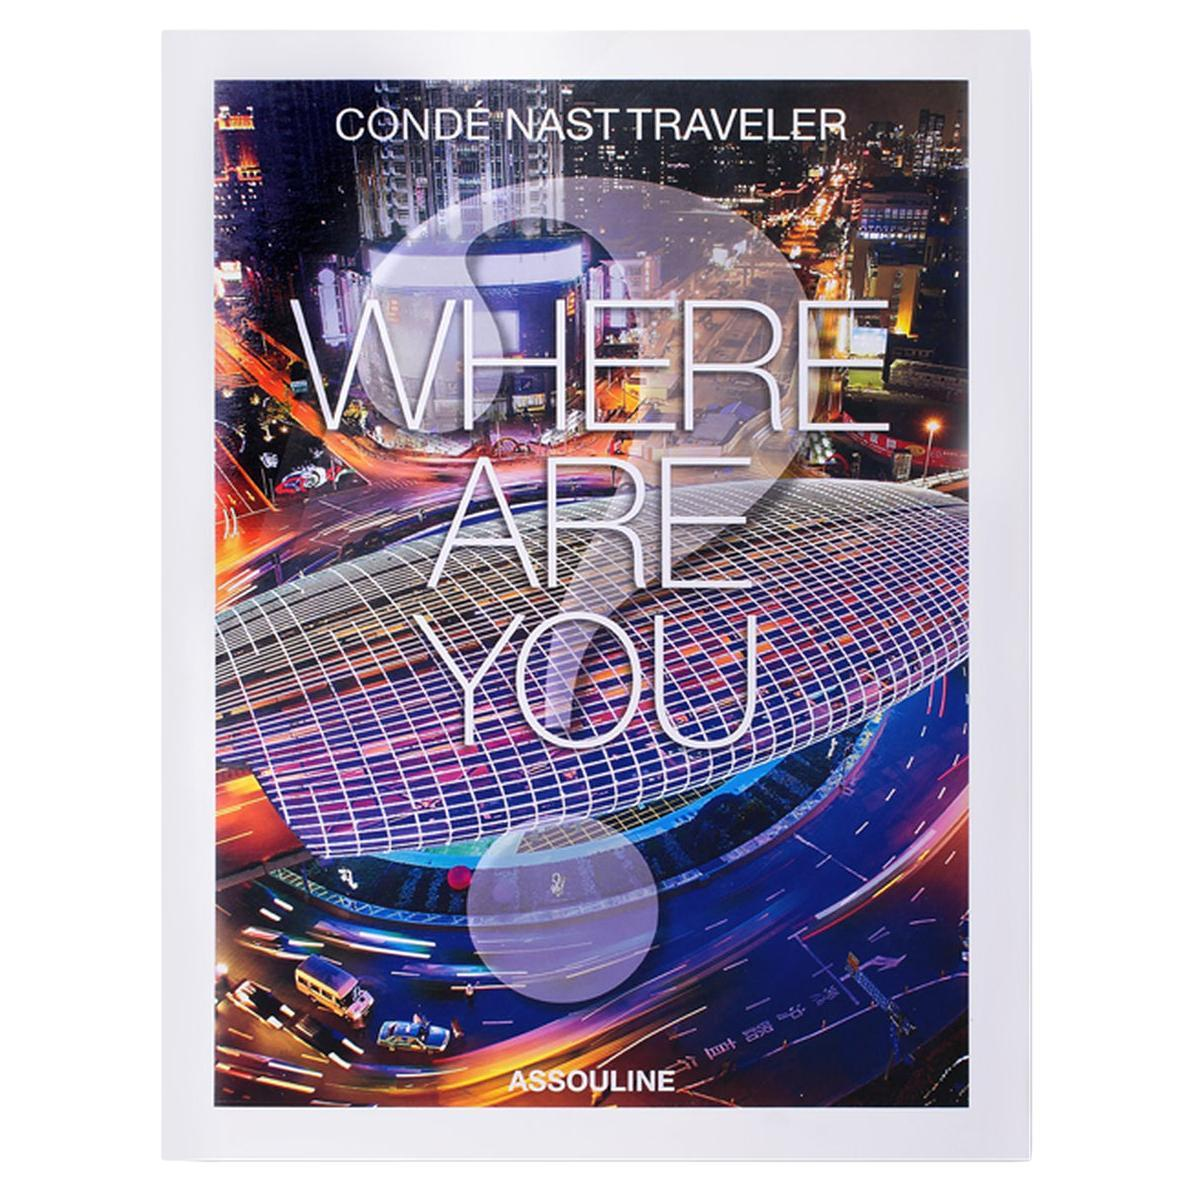 In Stock in Los Angeles, Conde Nast Traveler Where Are You?